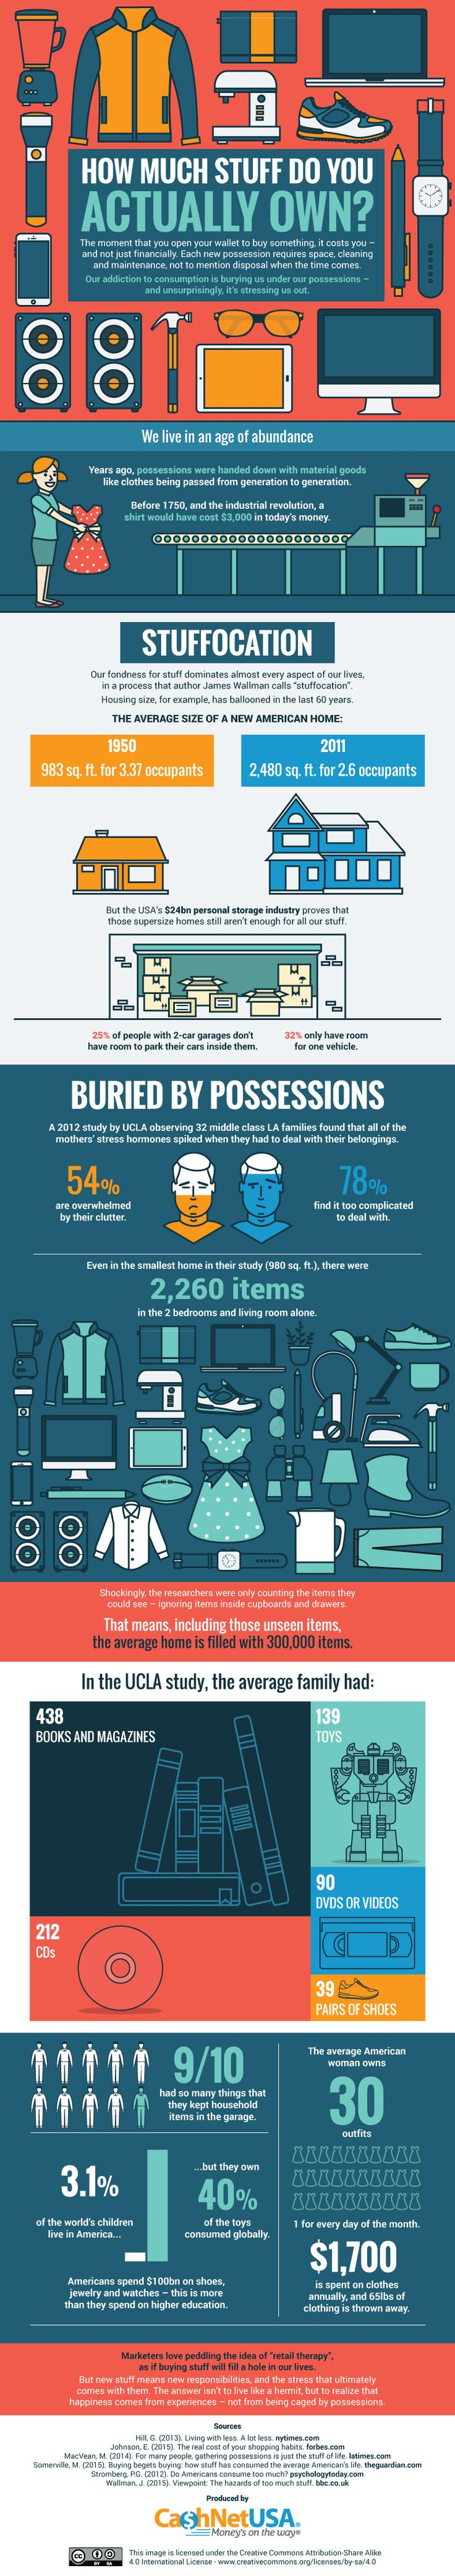 How Much Stuff Do You Actually Own? #Infographic